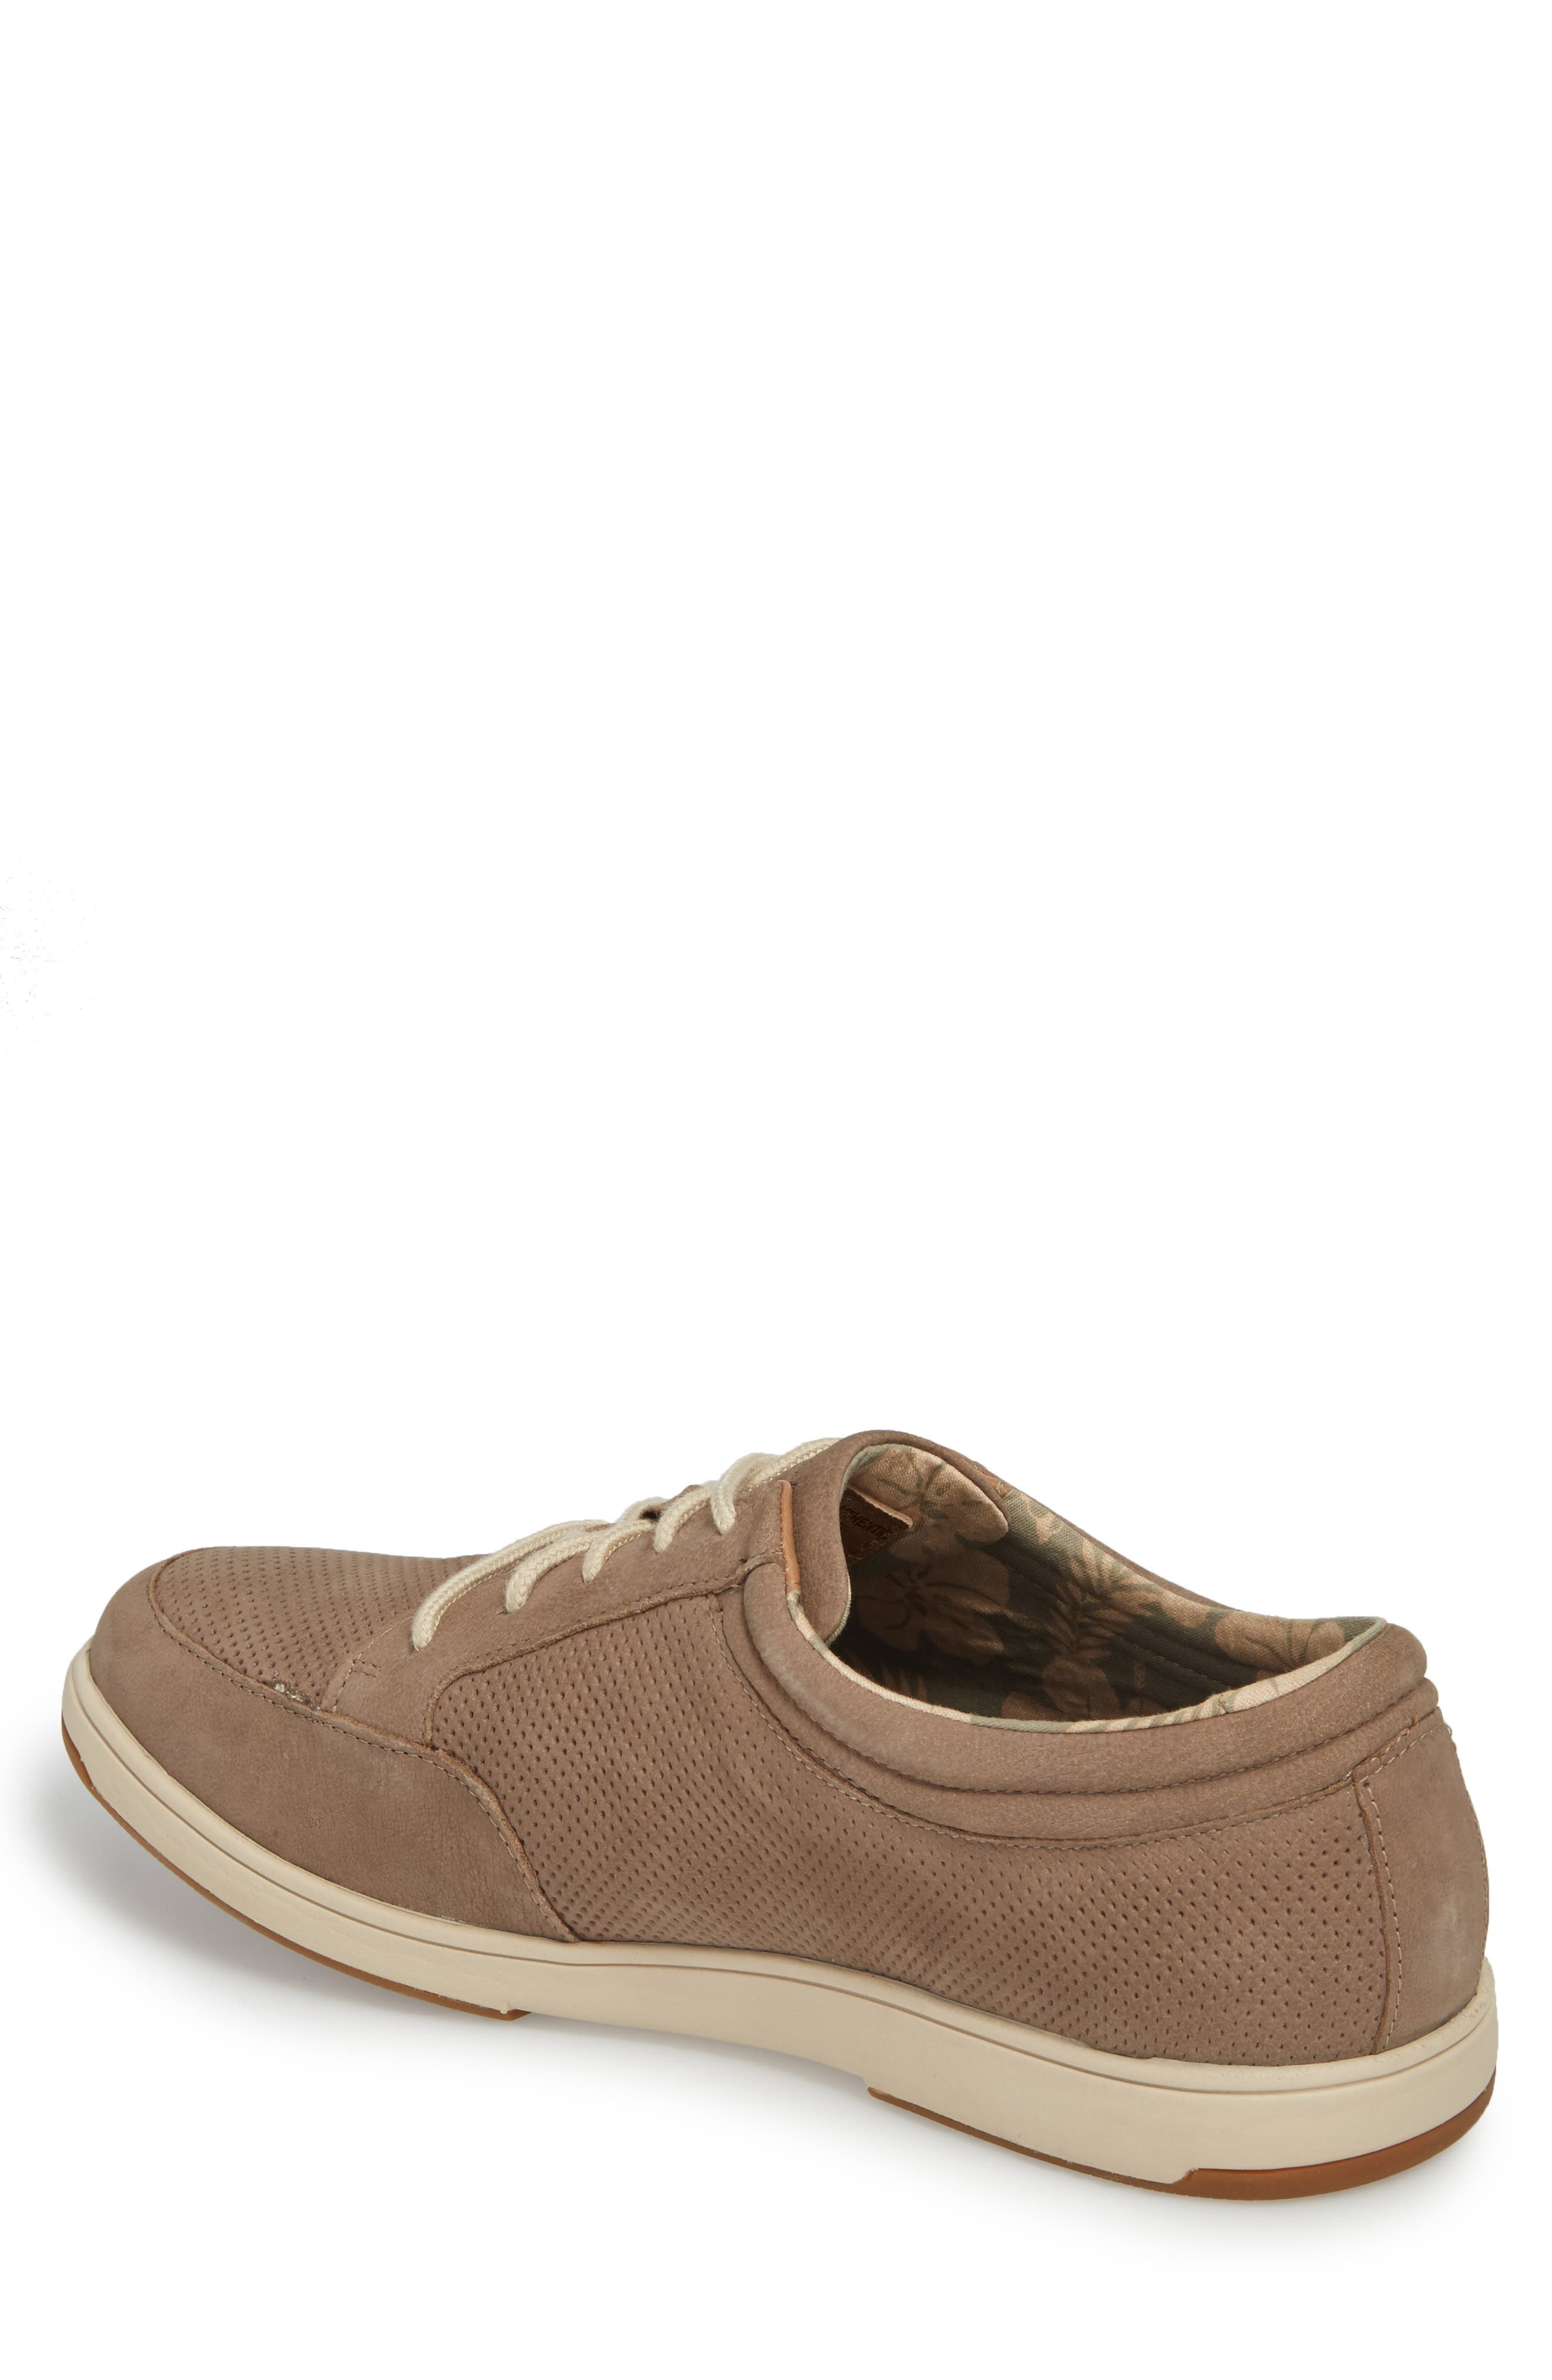 Caicos Authentic Low Top Sneaker,                             Alternate thumbnail 2, color,                             Taupe Leather